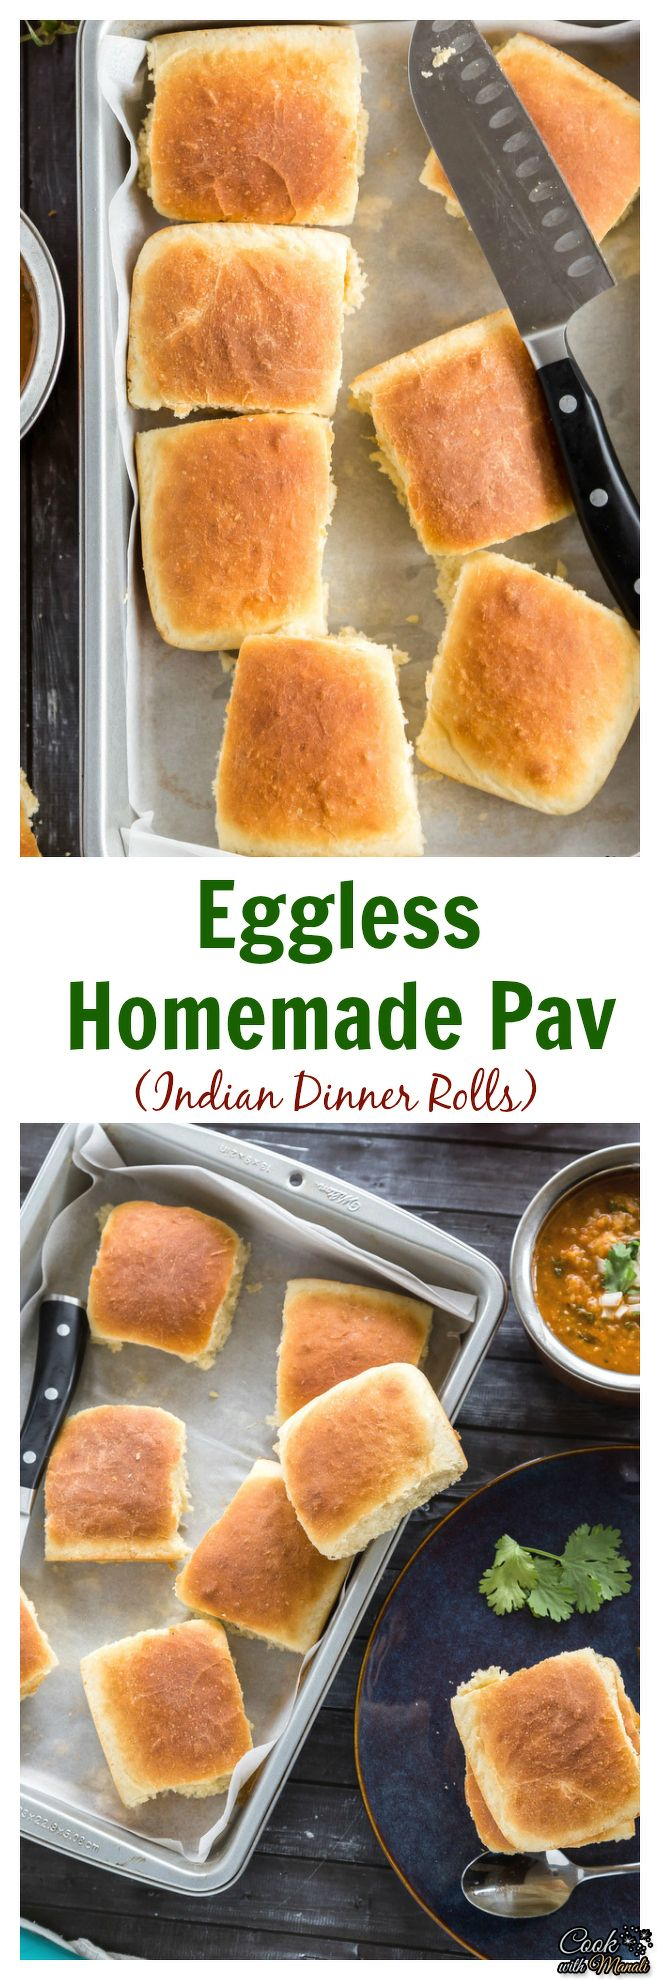 144 best indian food images on pinterest cooking food indian homemade pav on the sideveg recipesindian food forumfinder Images